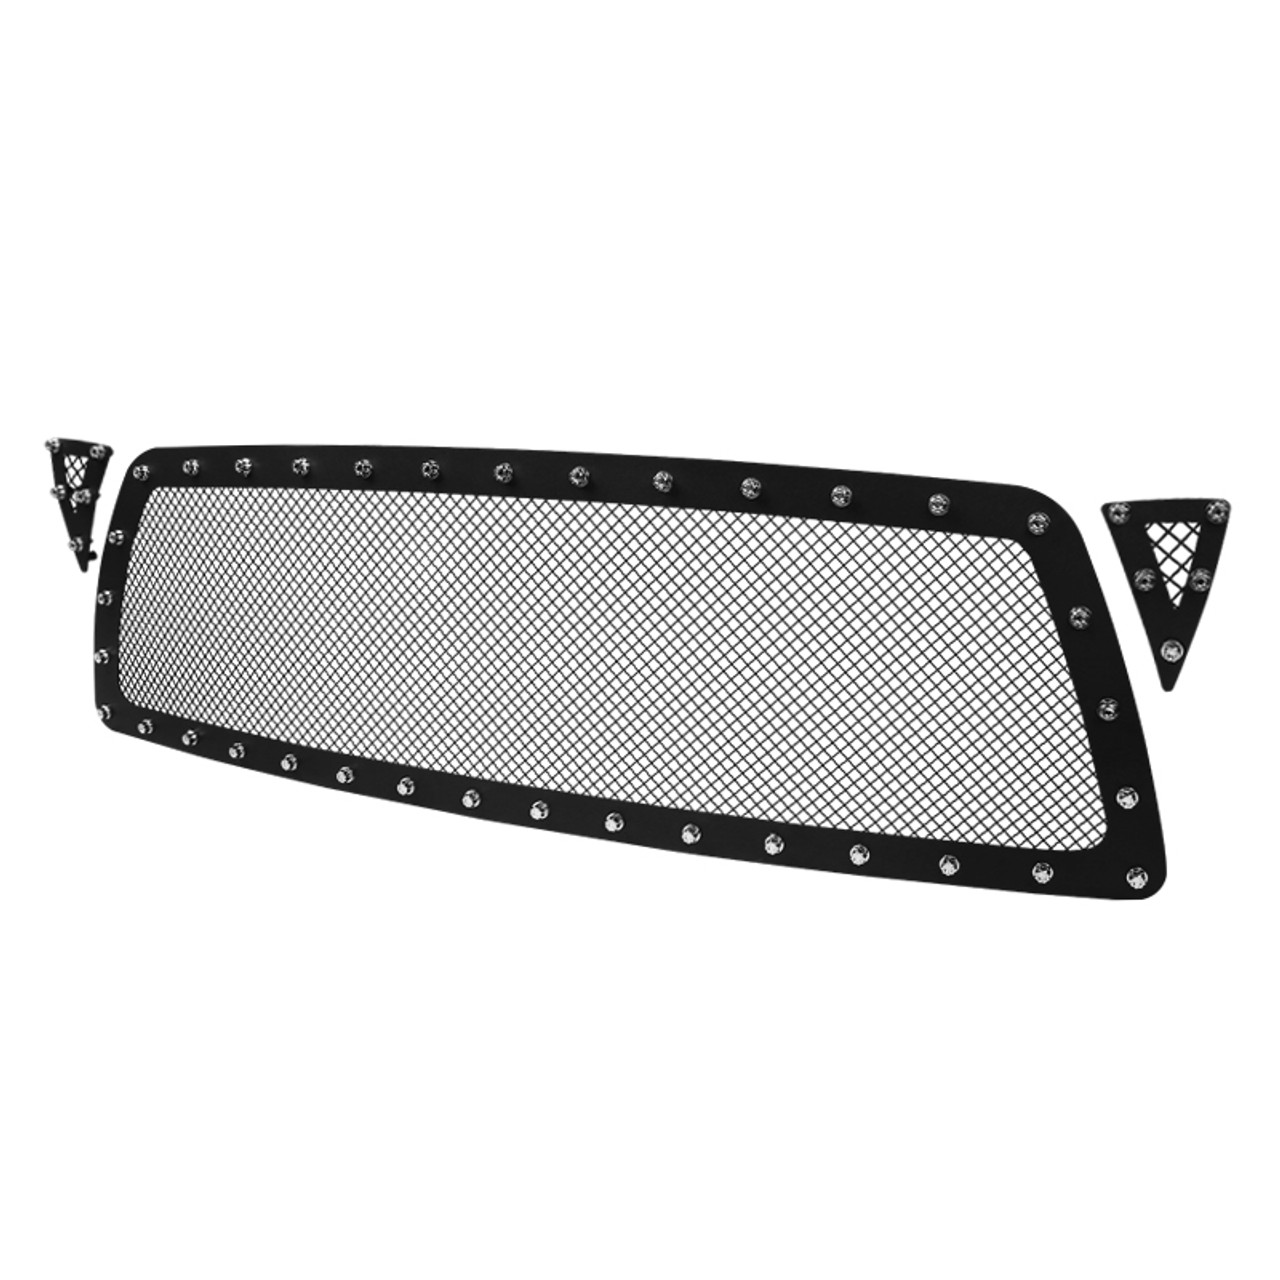 APS Compatible with 2005-2010 Tacoma TRD Sport Stainless Steel Polished Chrome 8x6 Horizontal Billet Grille Insert Combo T87742S